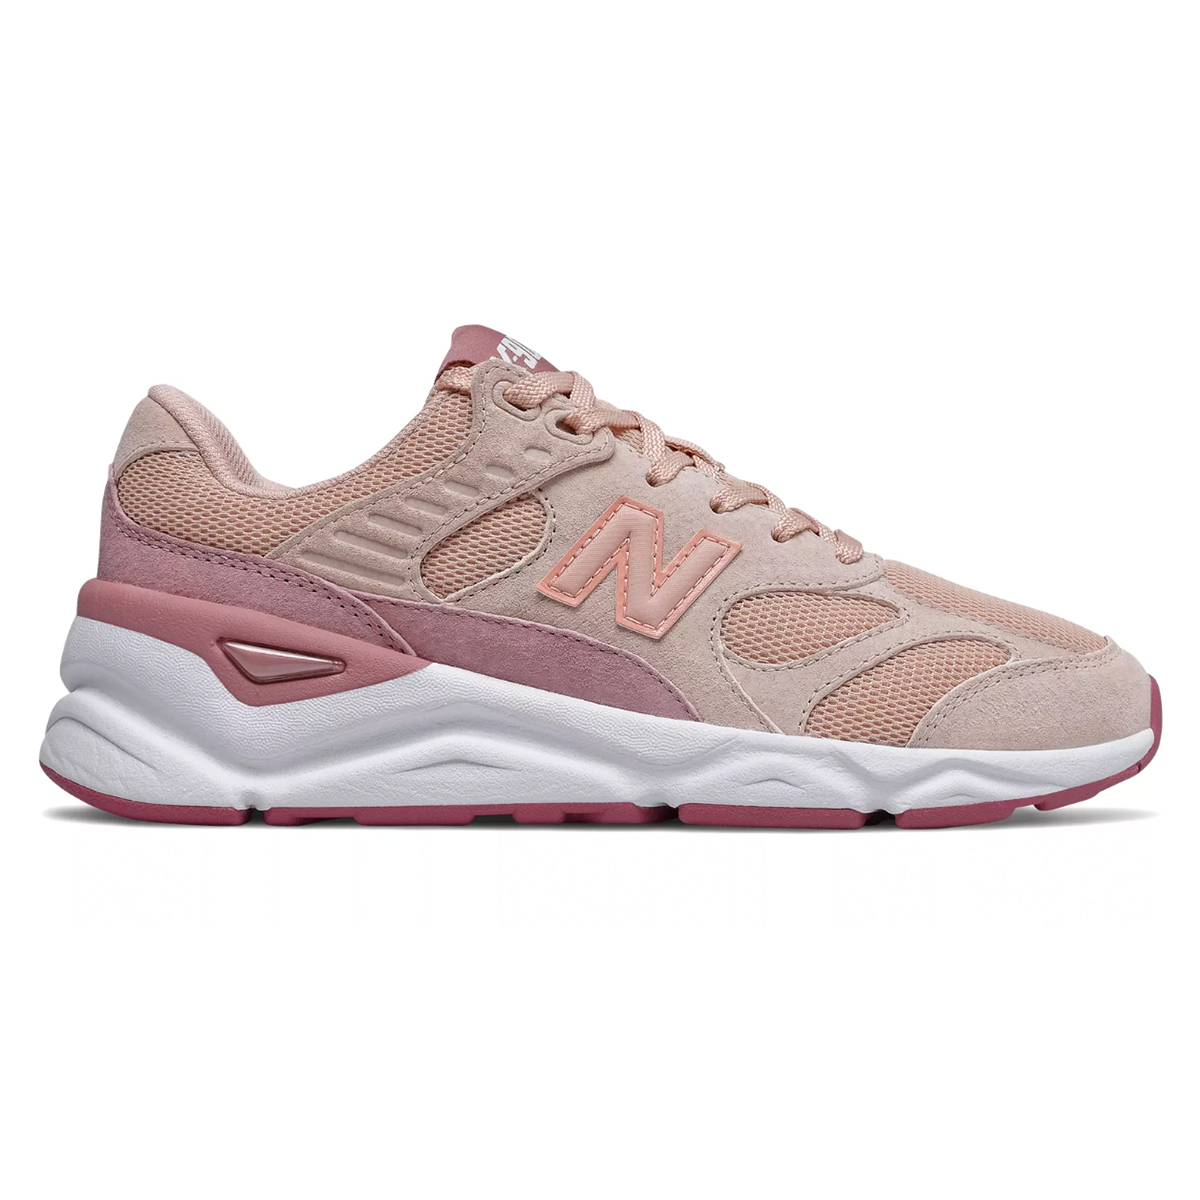 New Balance Reformation X90 Reconstructed